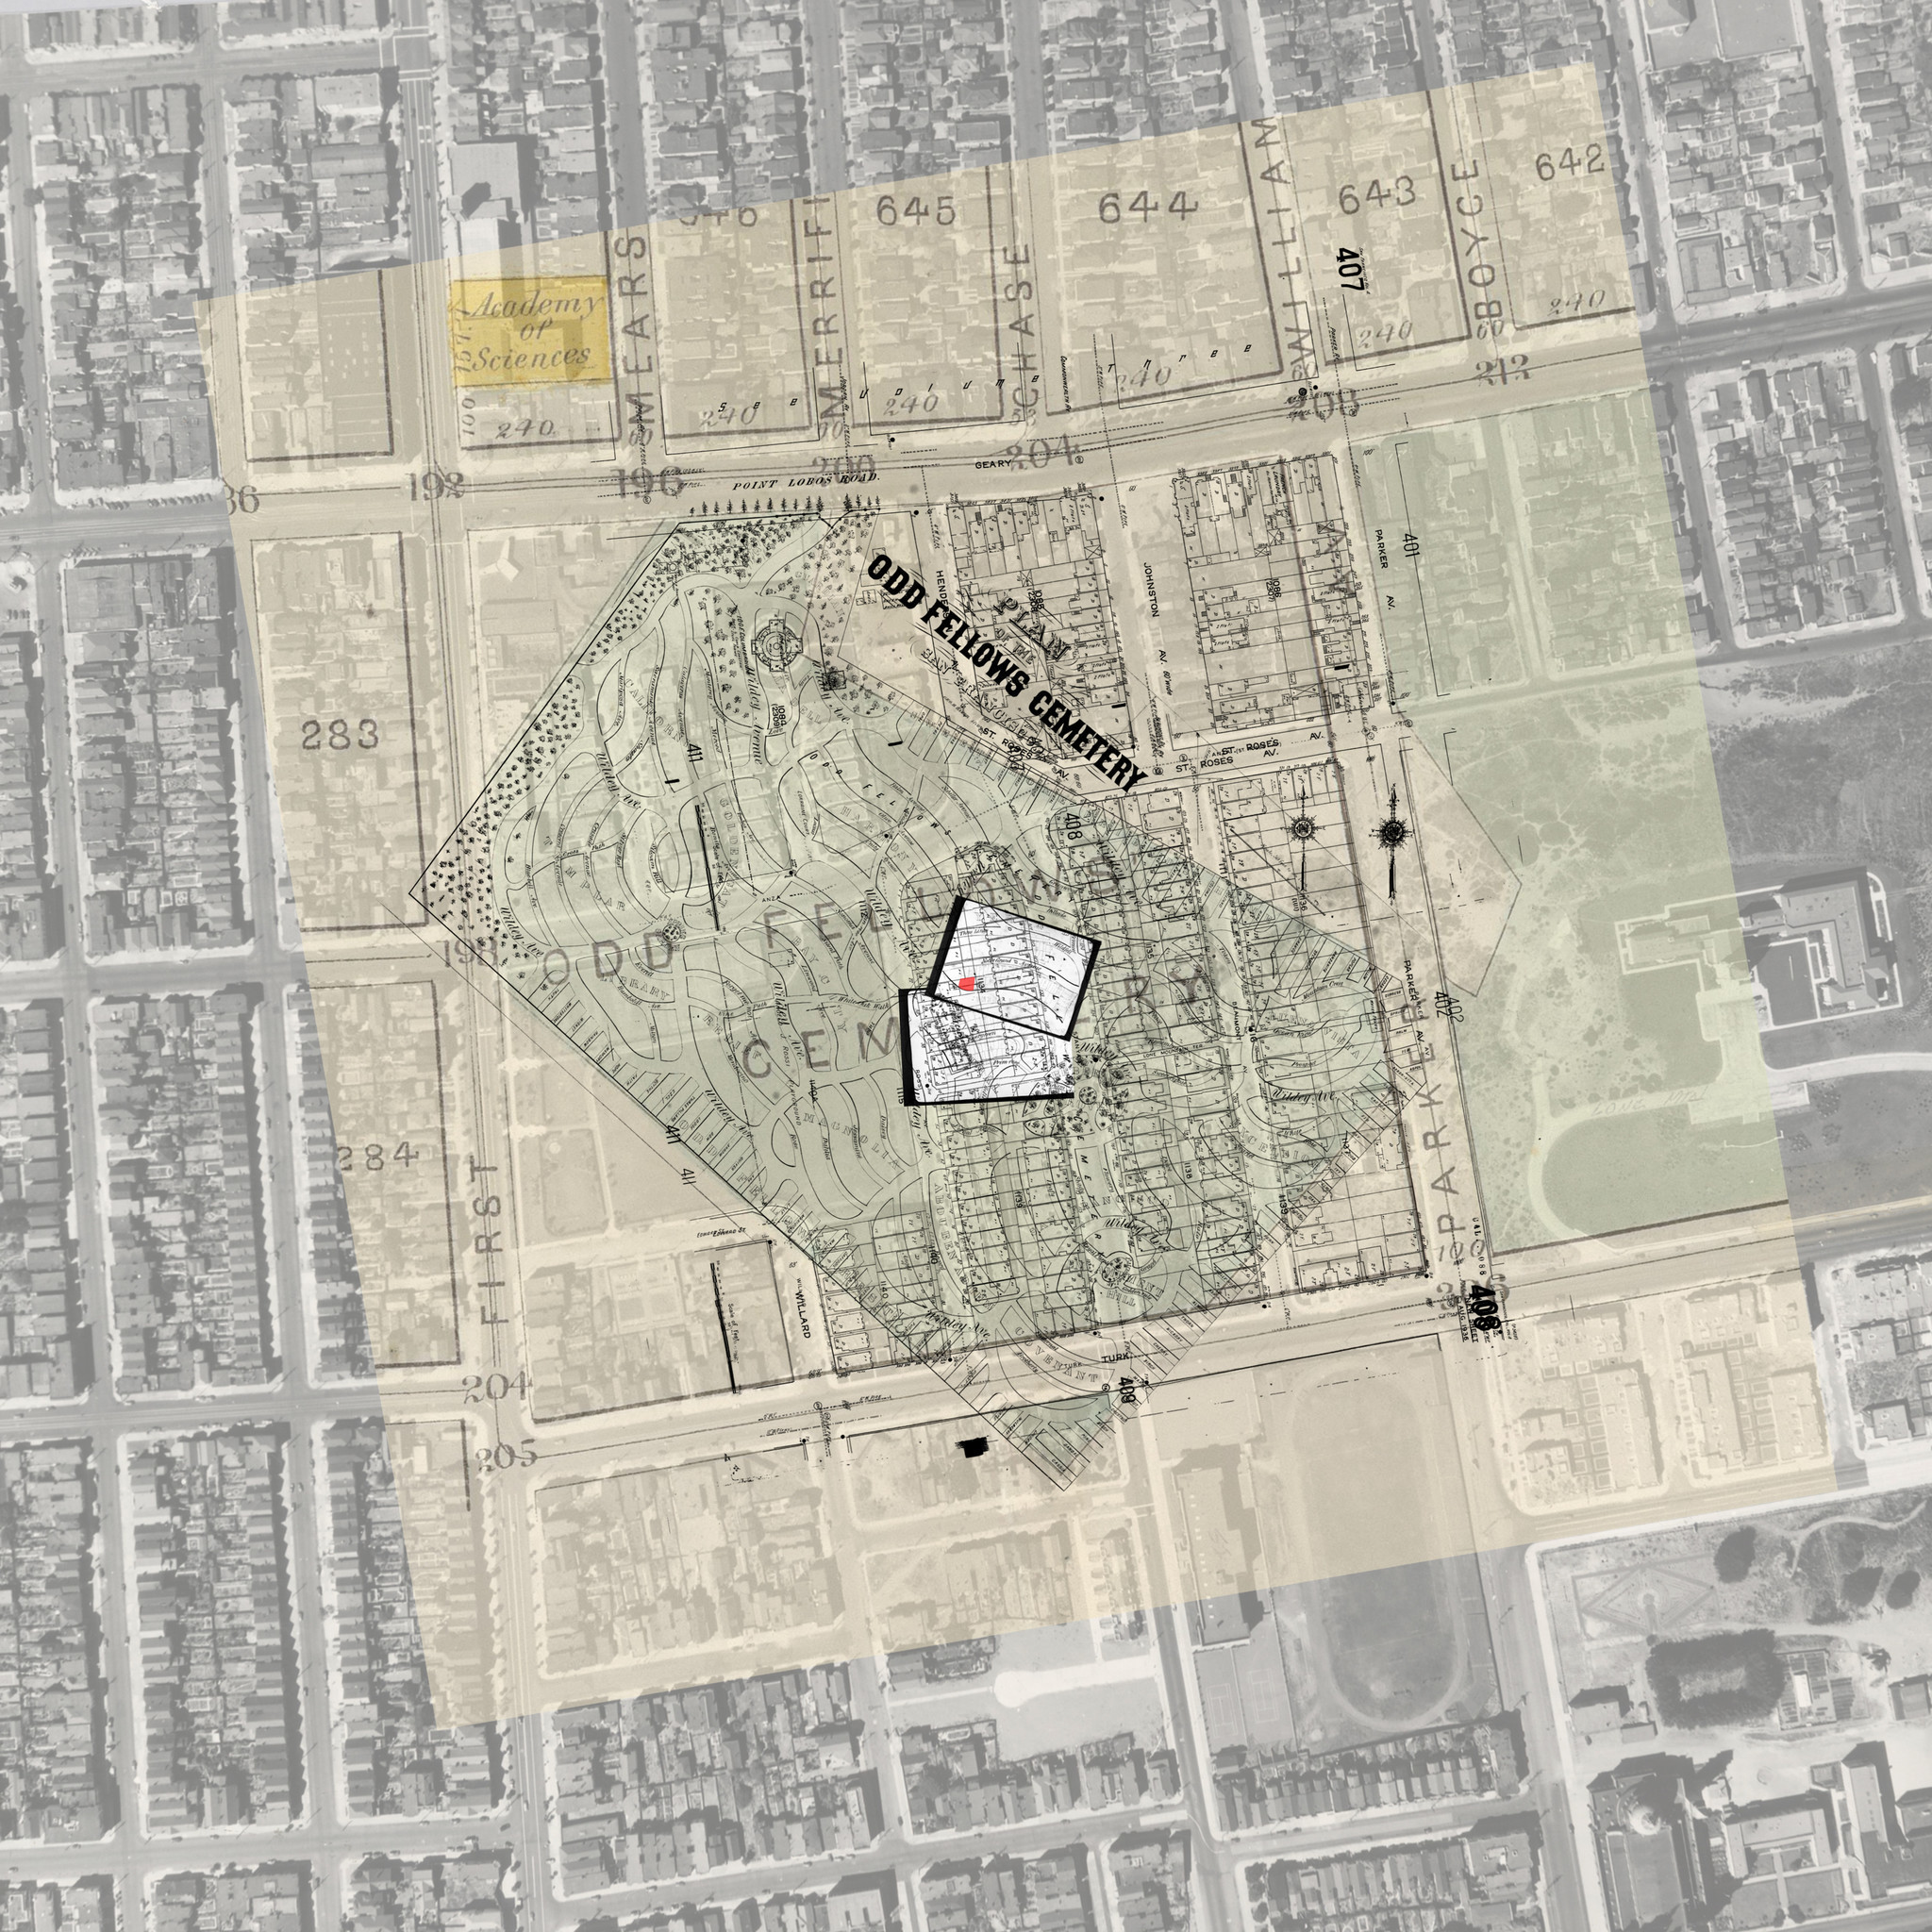 Researchers created a digital overlay of a half-dozen historical maps of Odd Fellows Cemetery, including original cemetery drawings and plans, to place on top of the neighborhood where Edith Cook was found. The work whittled down the potential identities of the girl.